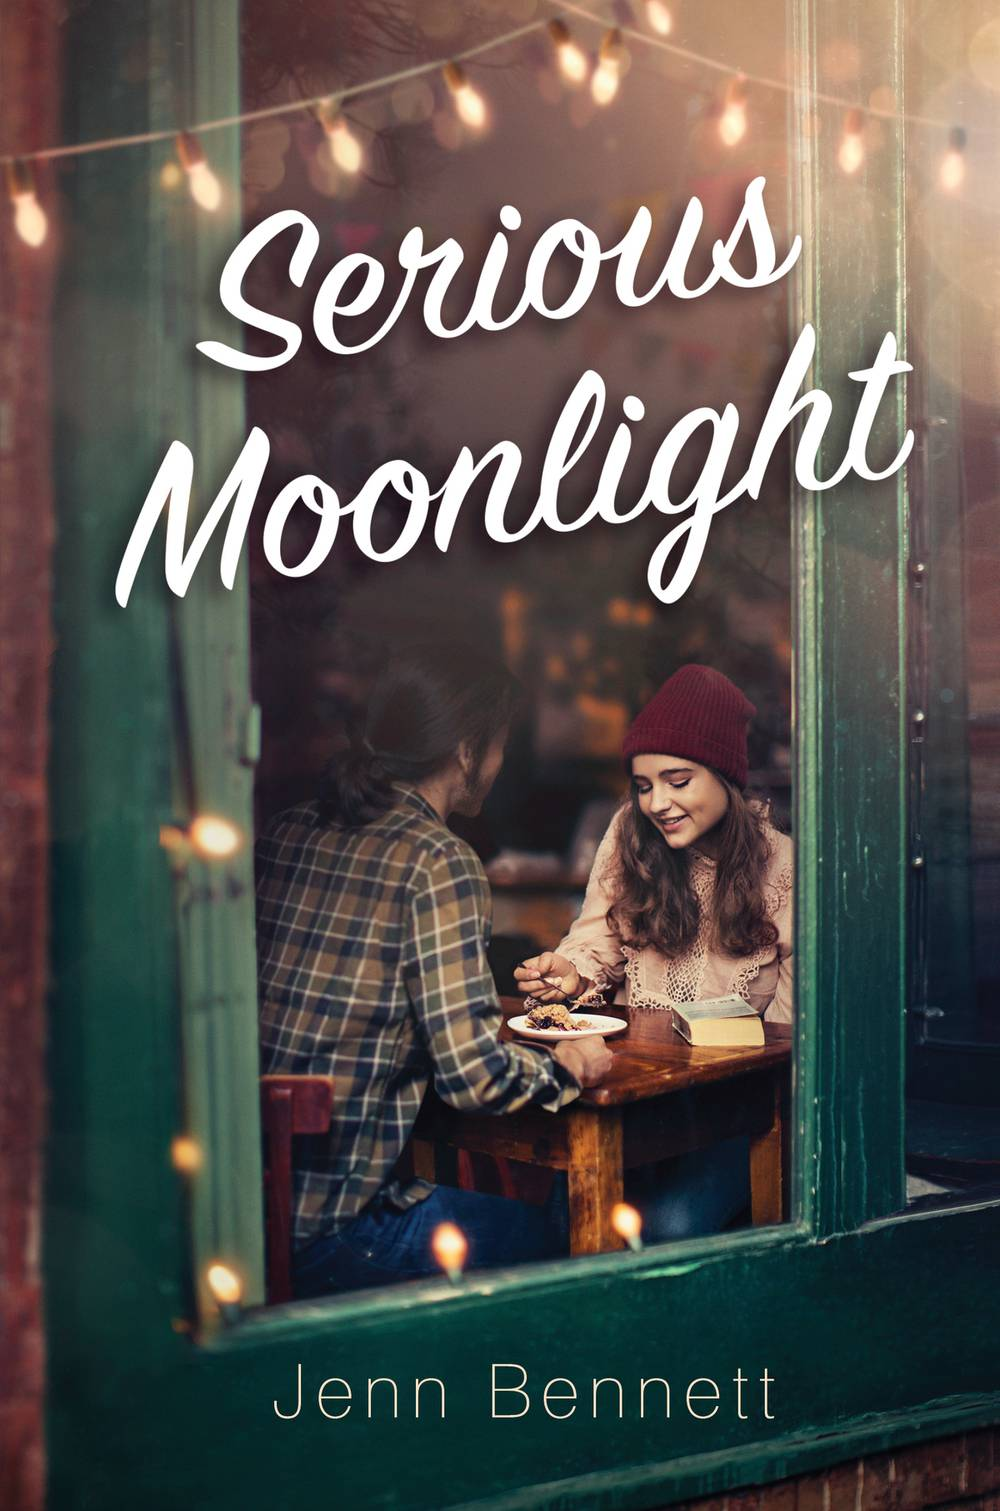 Serious Moonlight' book review: A sweet and charming YA romance